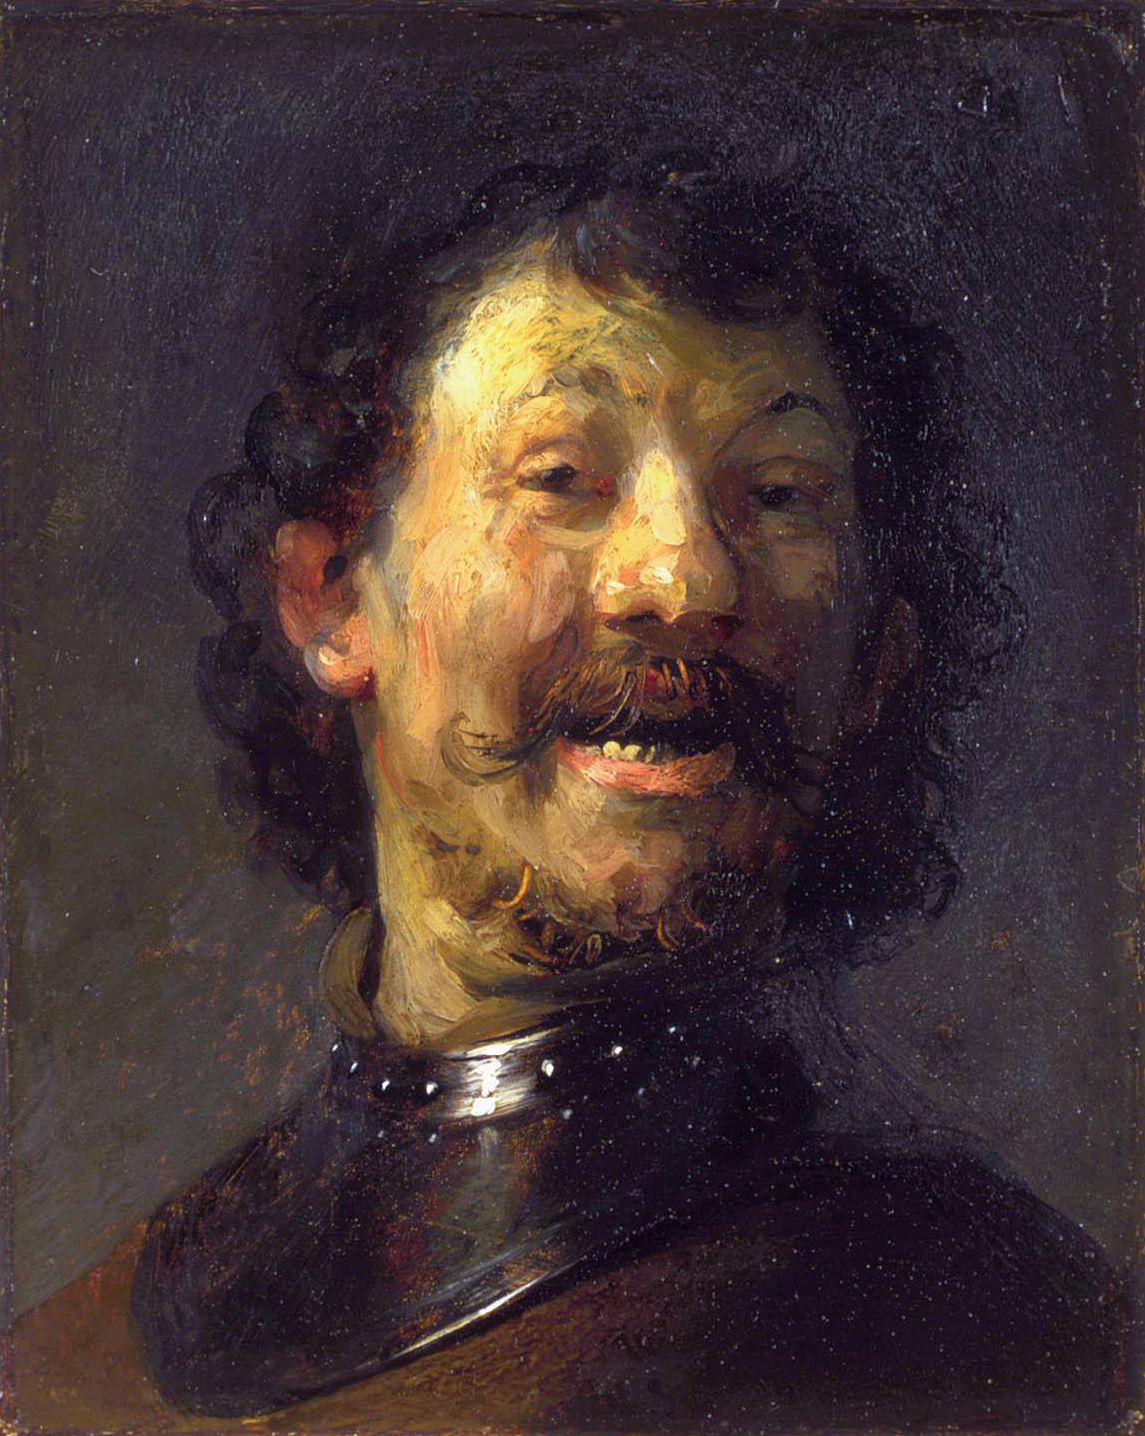 a biography of the painter rembrandt harmenszoon van riju Rembrandt harmensz van rijn is considered to be perhaps the greatest artist of the dutch golden age, the period in 17th-century holland that also produced such.